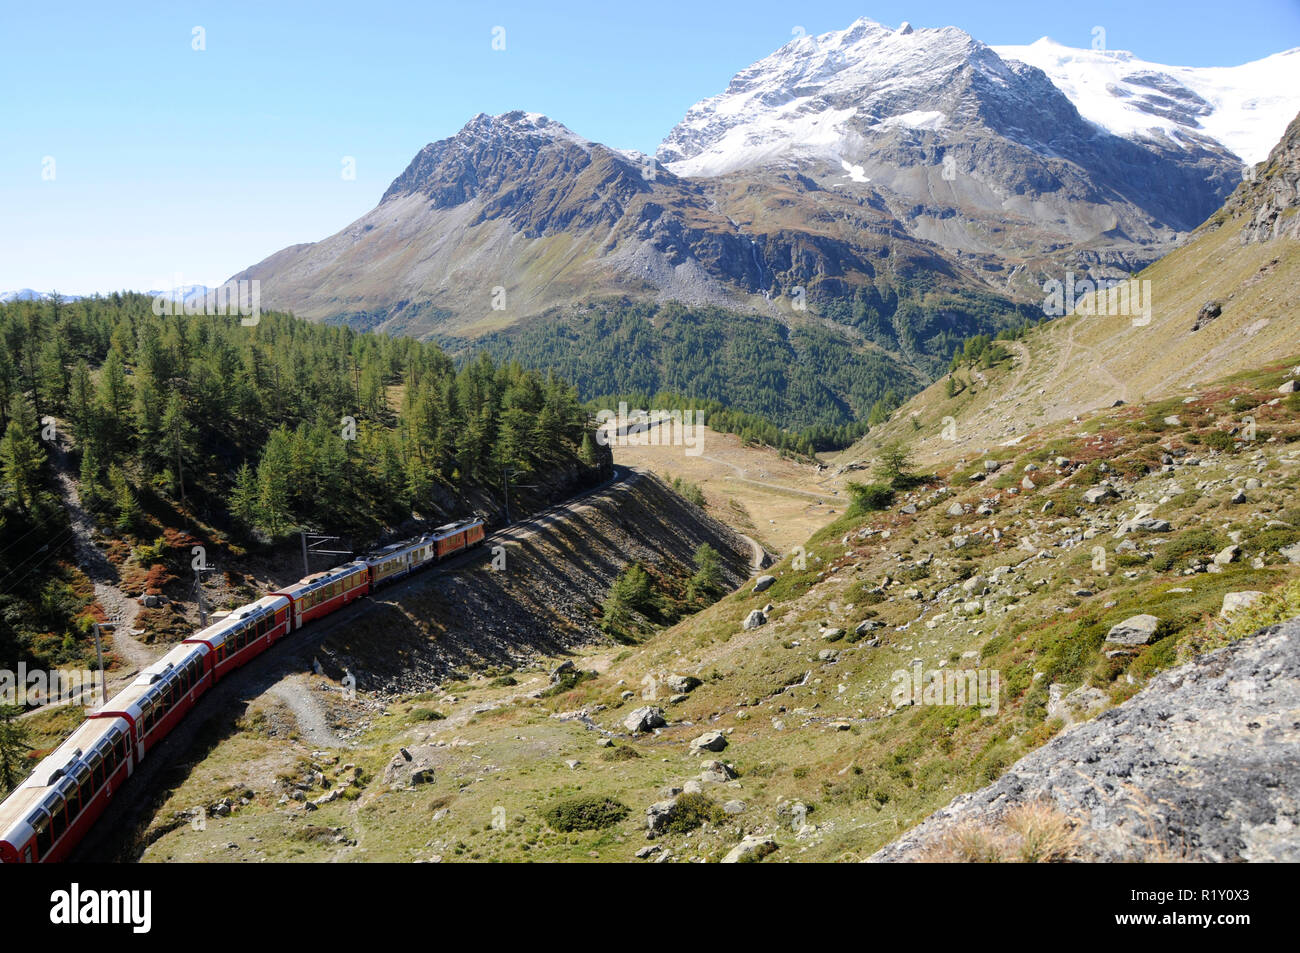 The Bernina train drives over the Swiss Alps in the Oberengadin from Pontresina via Bernina-Hospitz to Alp Grüm and ends in Tirano (Italy). - Stock Image